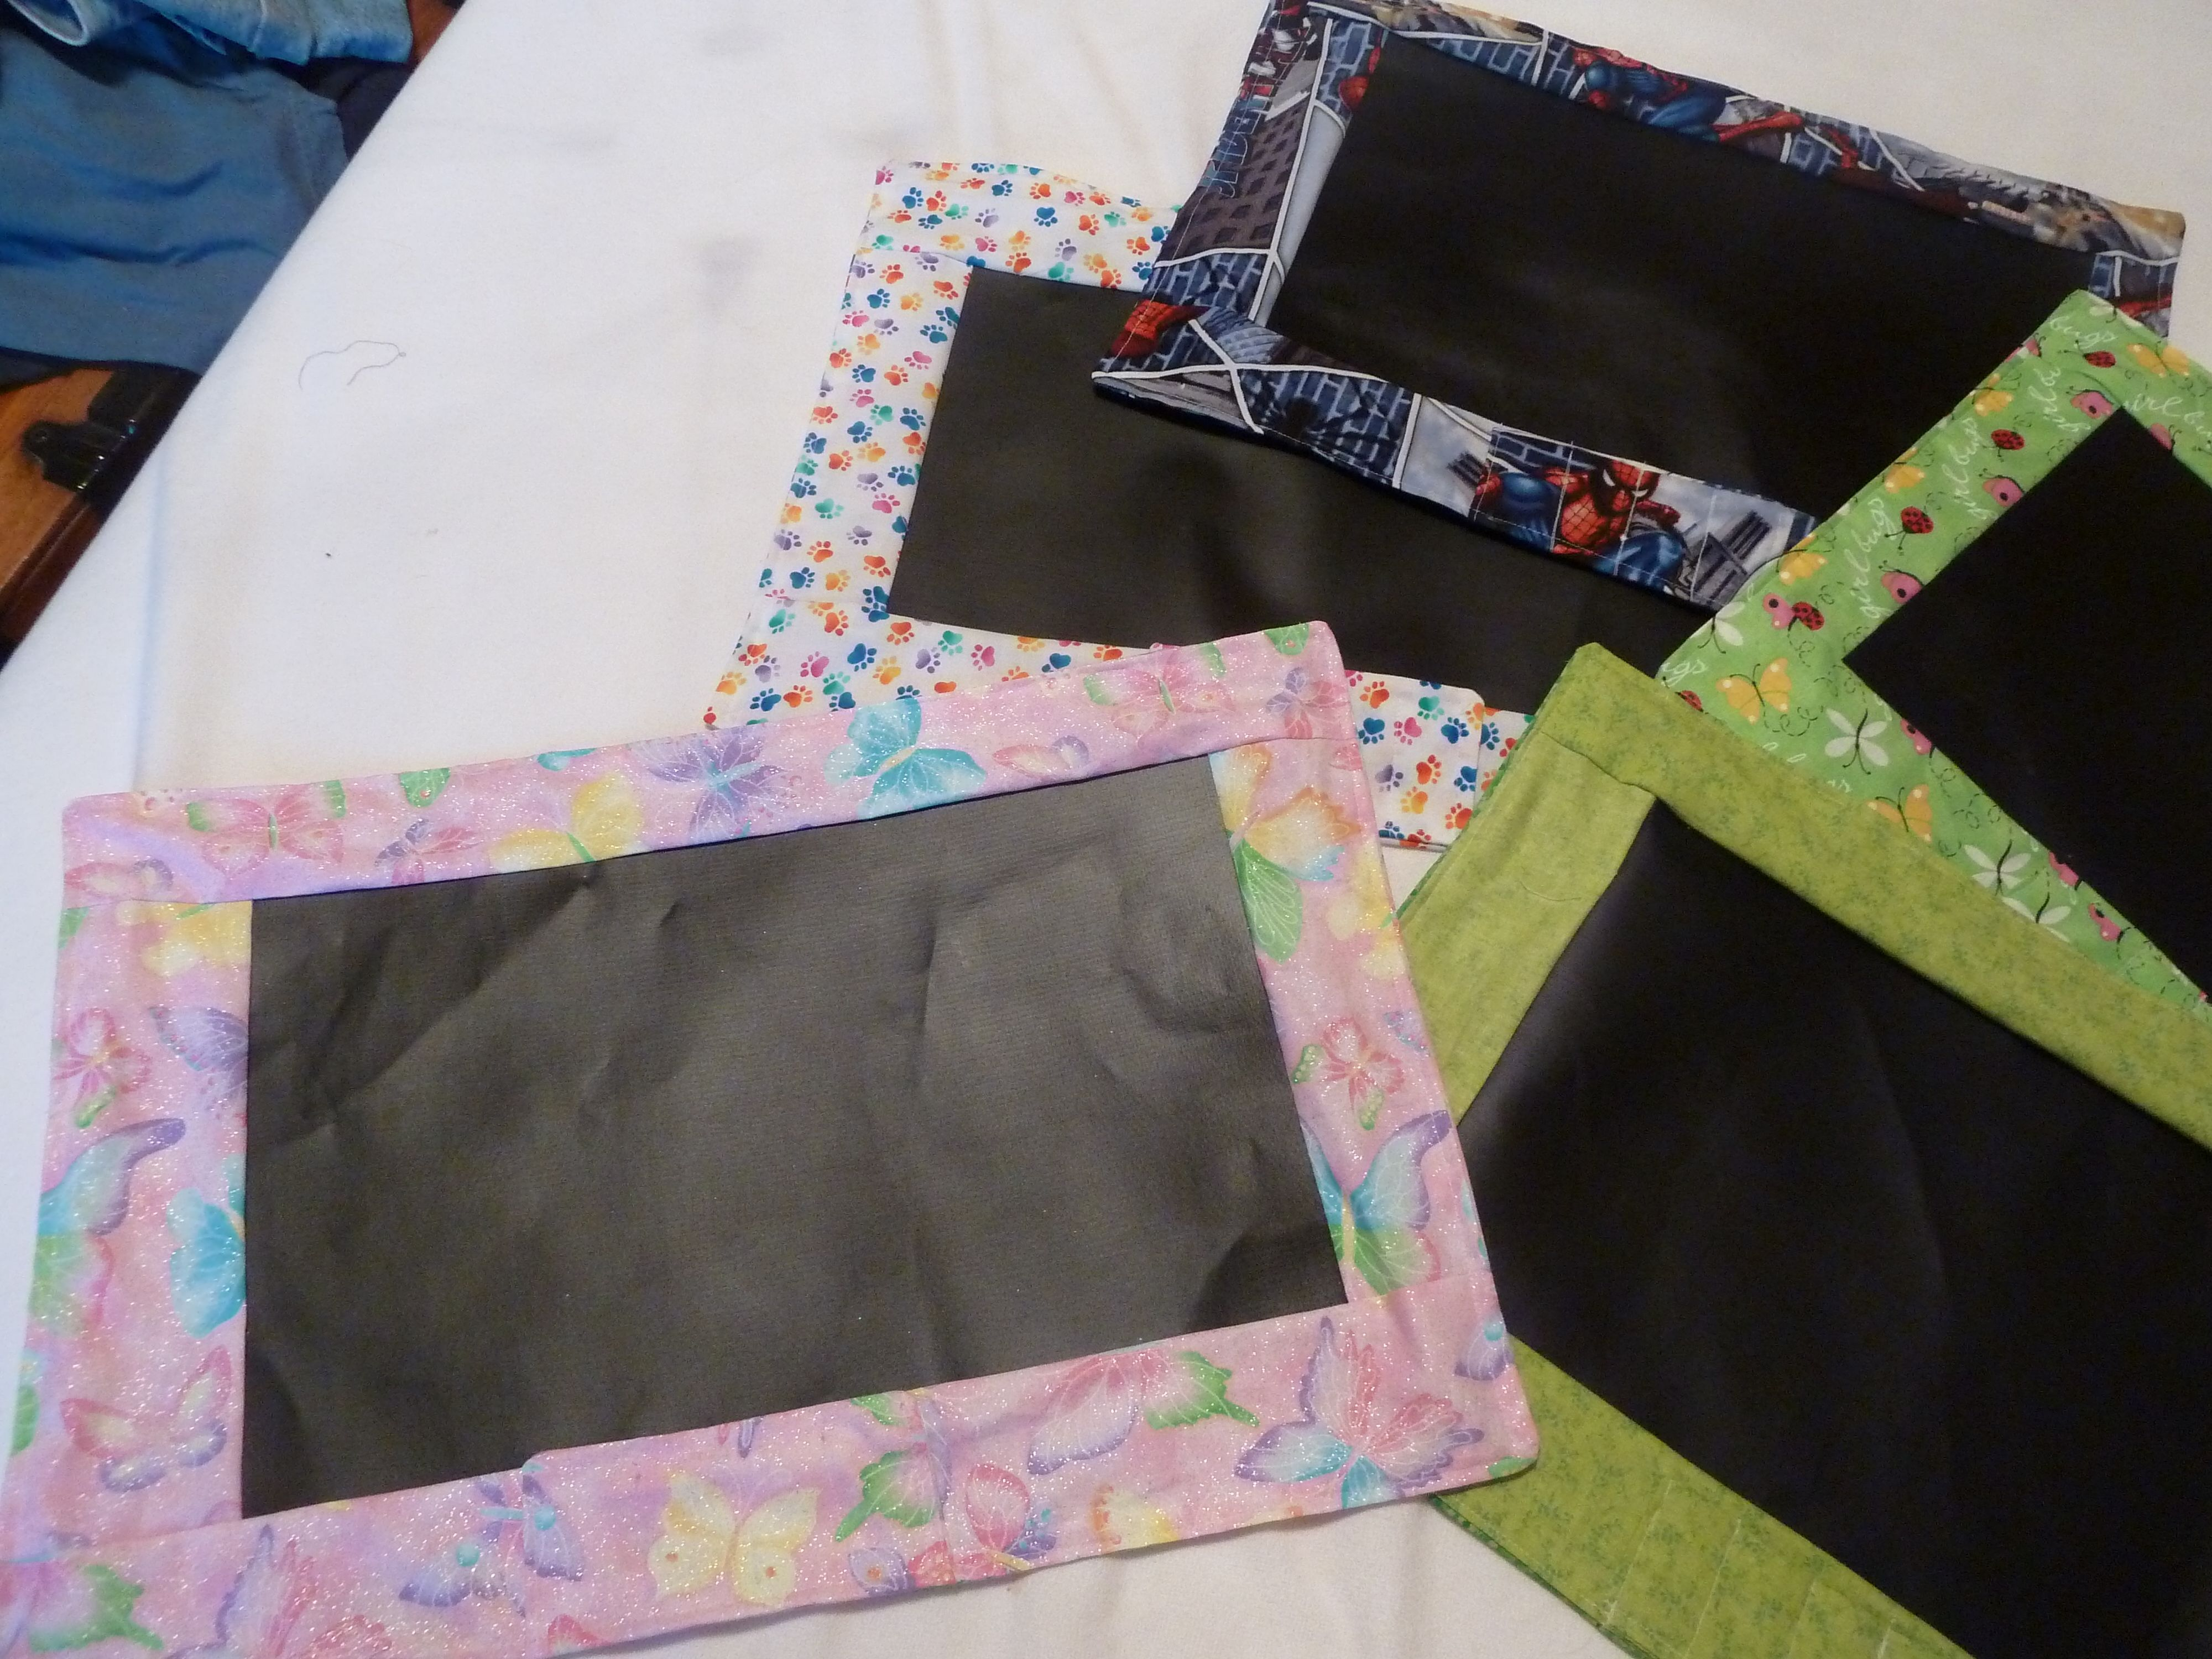 These Are Chalkboard Placemats For Children Easy To Make With Chalkboard Fabric Chalkboard Fabric Fabric Projects Chalkboard Placemats